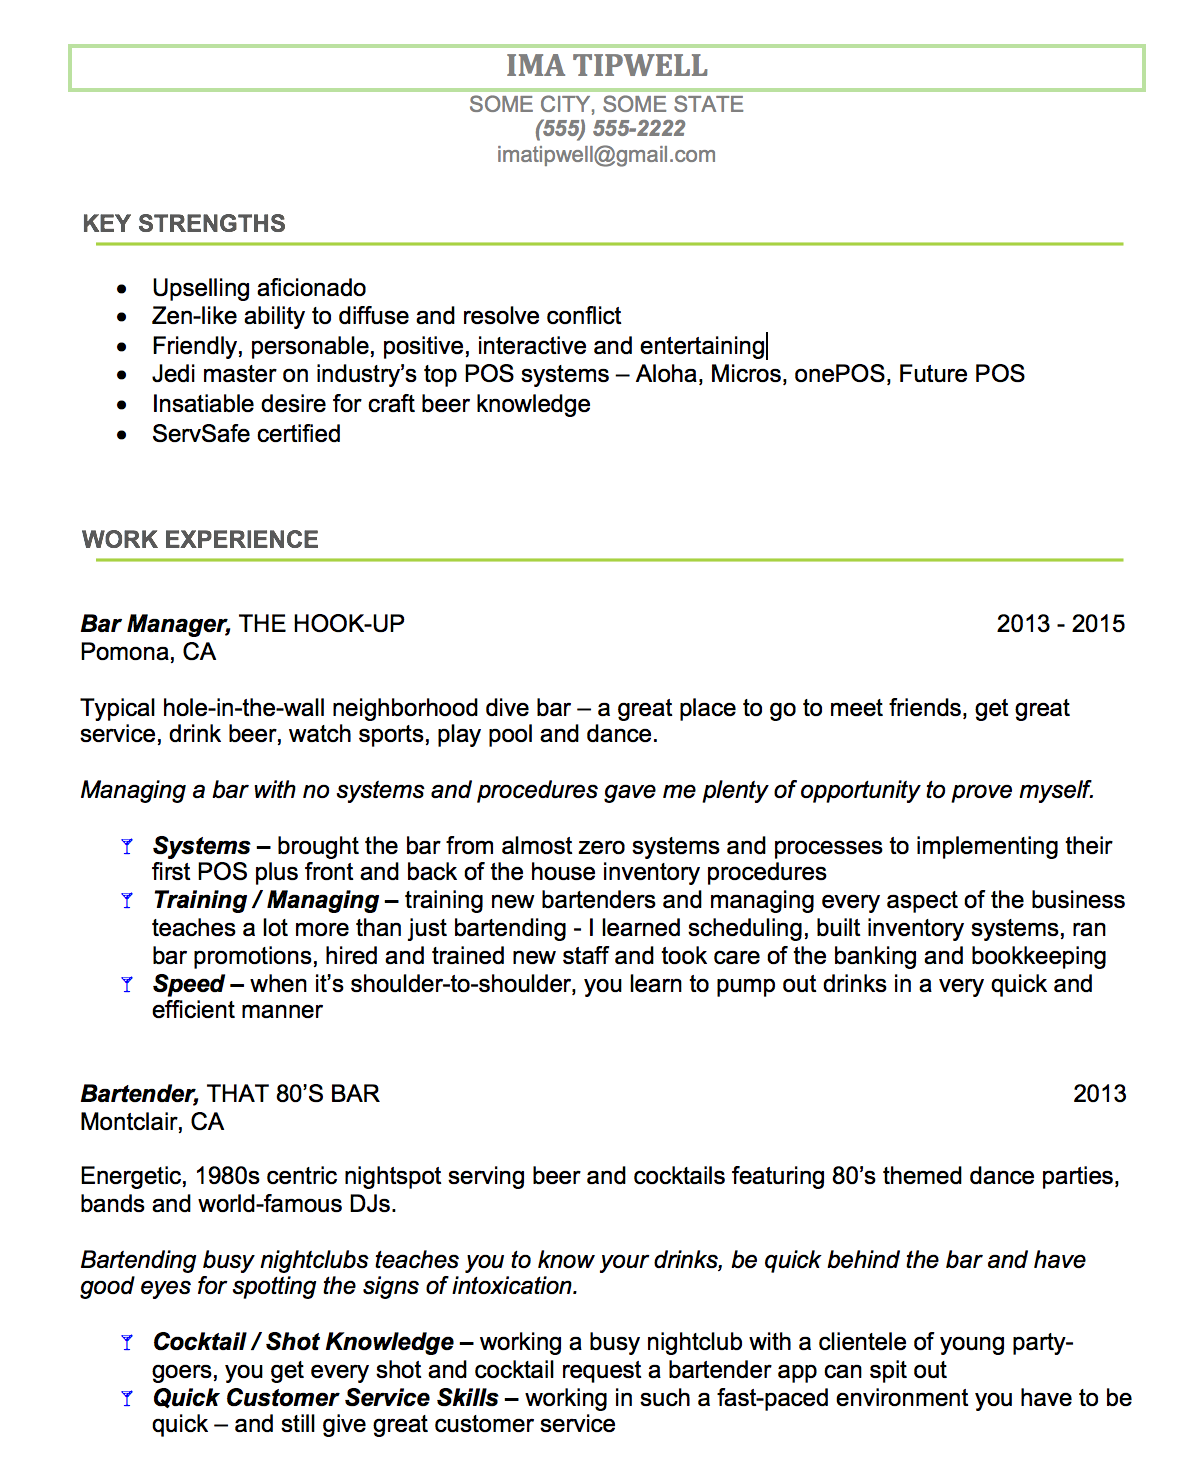 Sample Job Resumes Examples: Bartenders Resume Writing Service: We Tailor The Resume To You